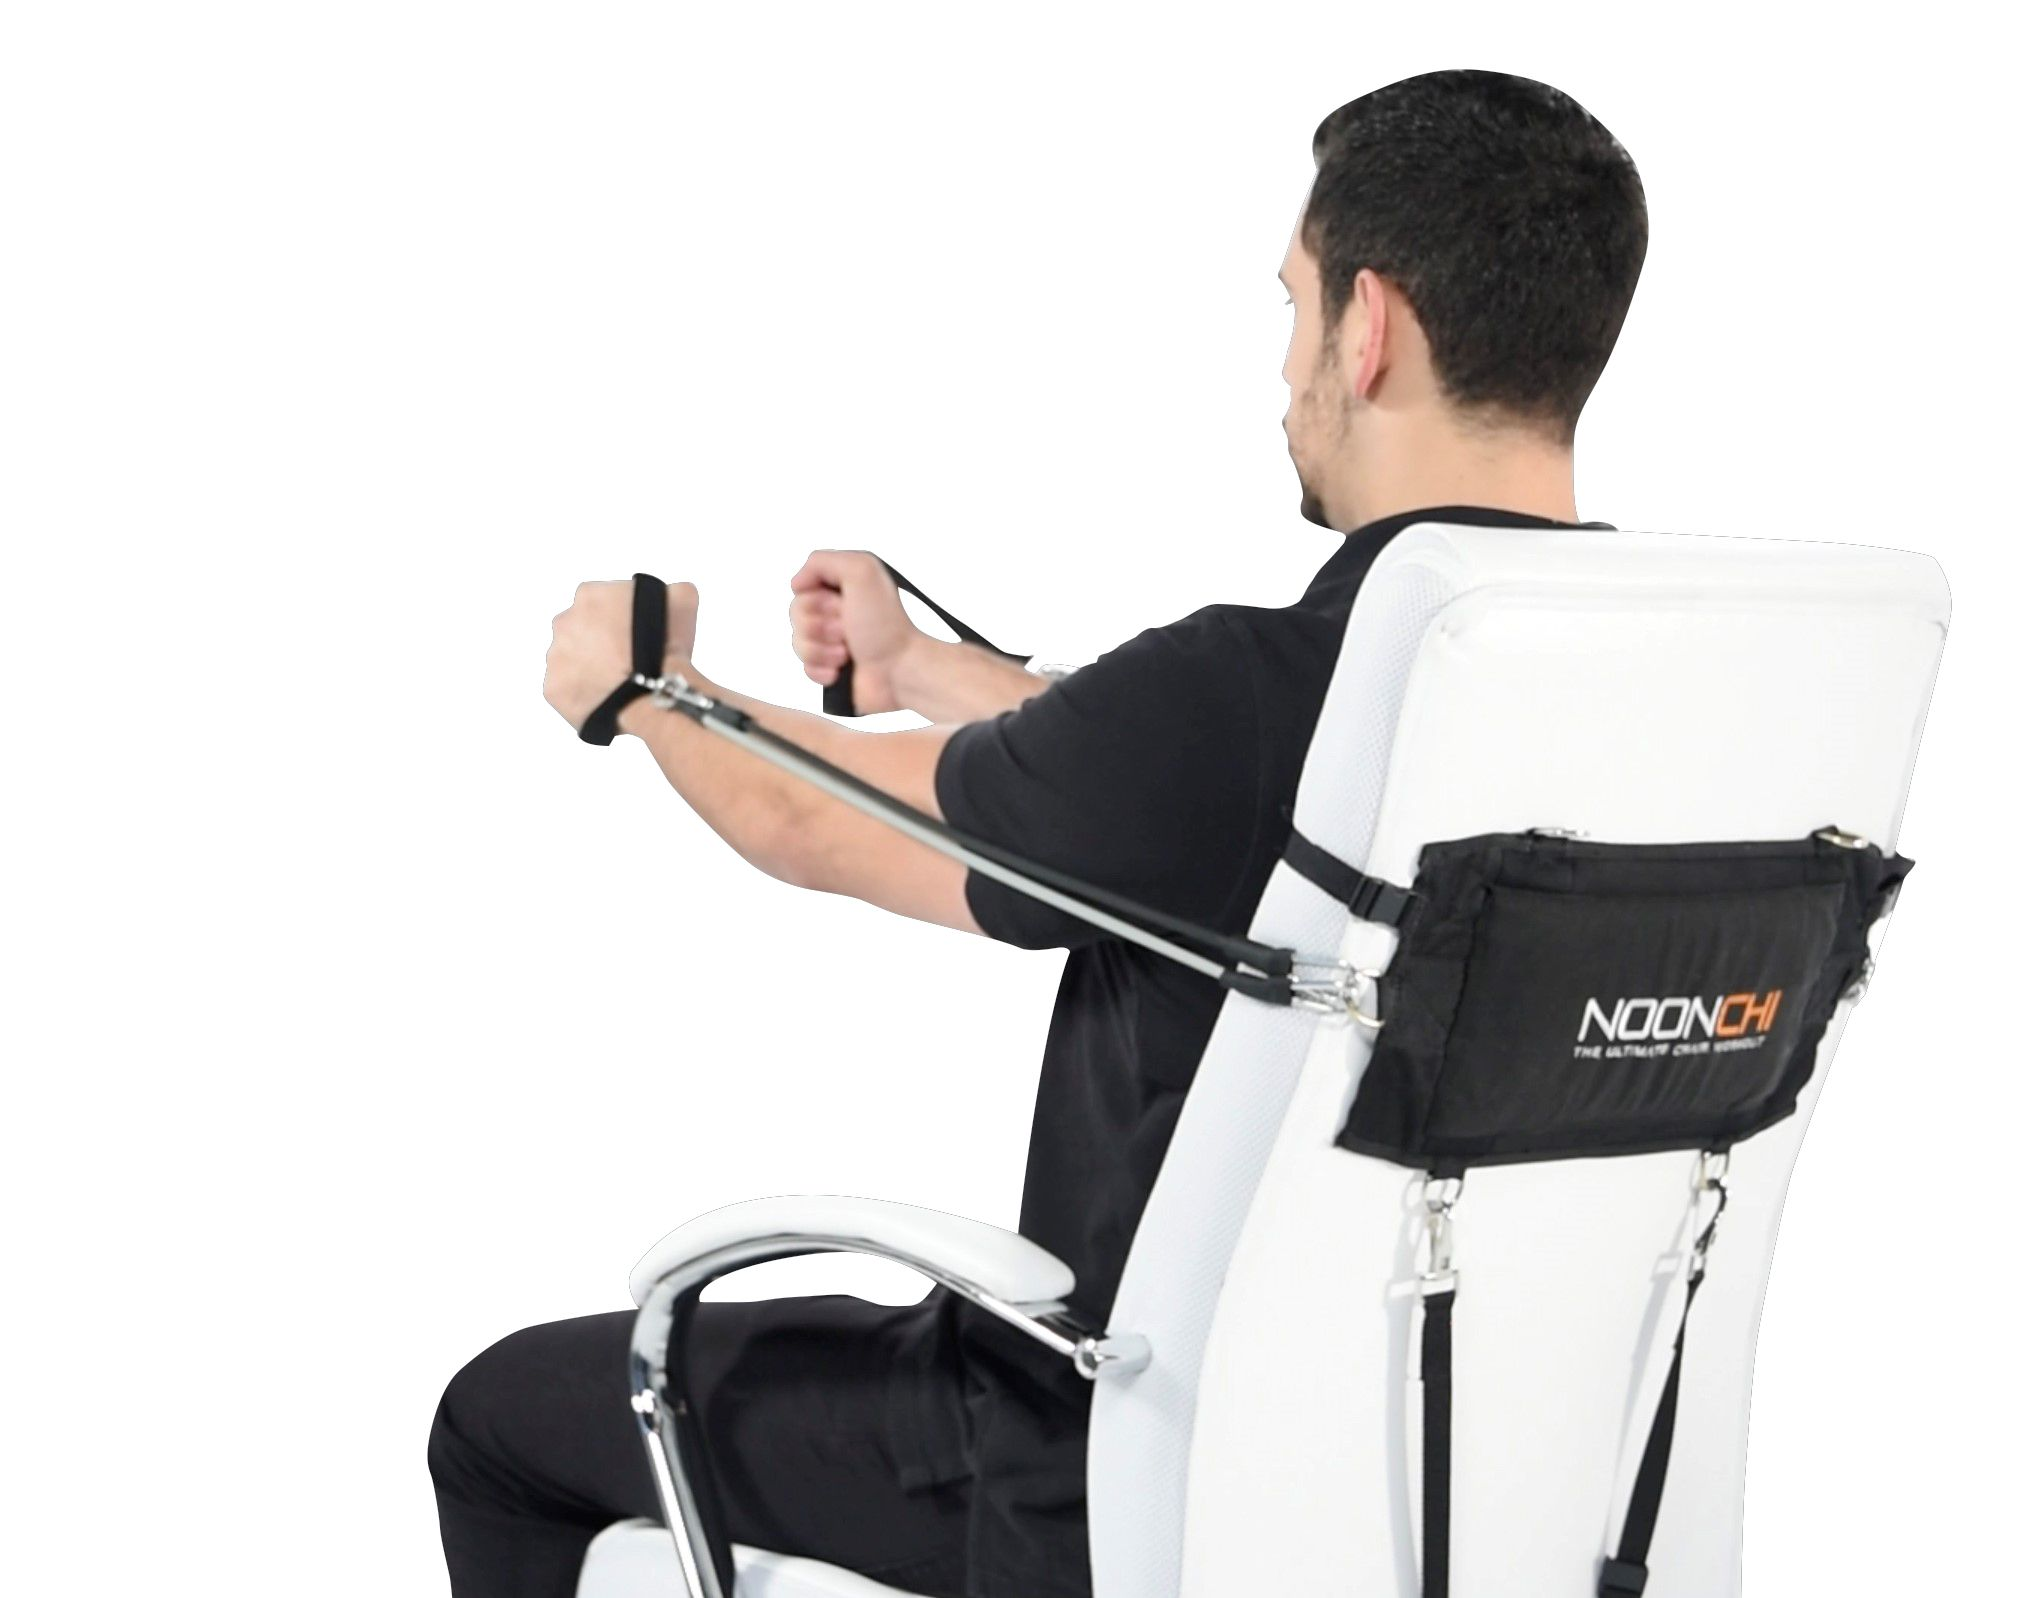 office chair workout office workout home workout noonchi rh pinterest com